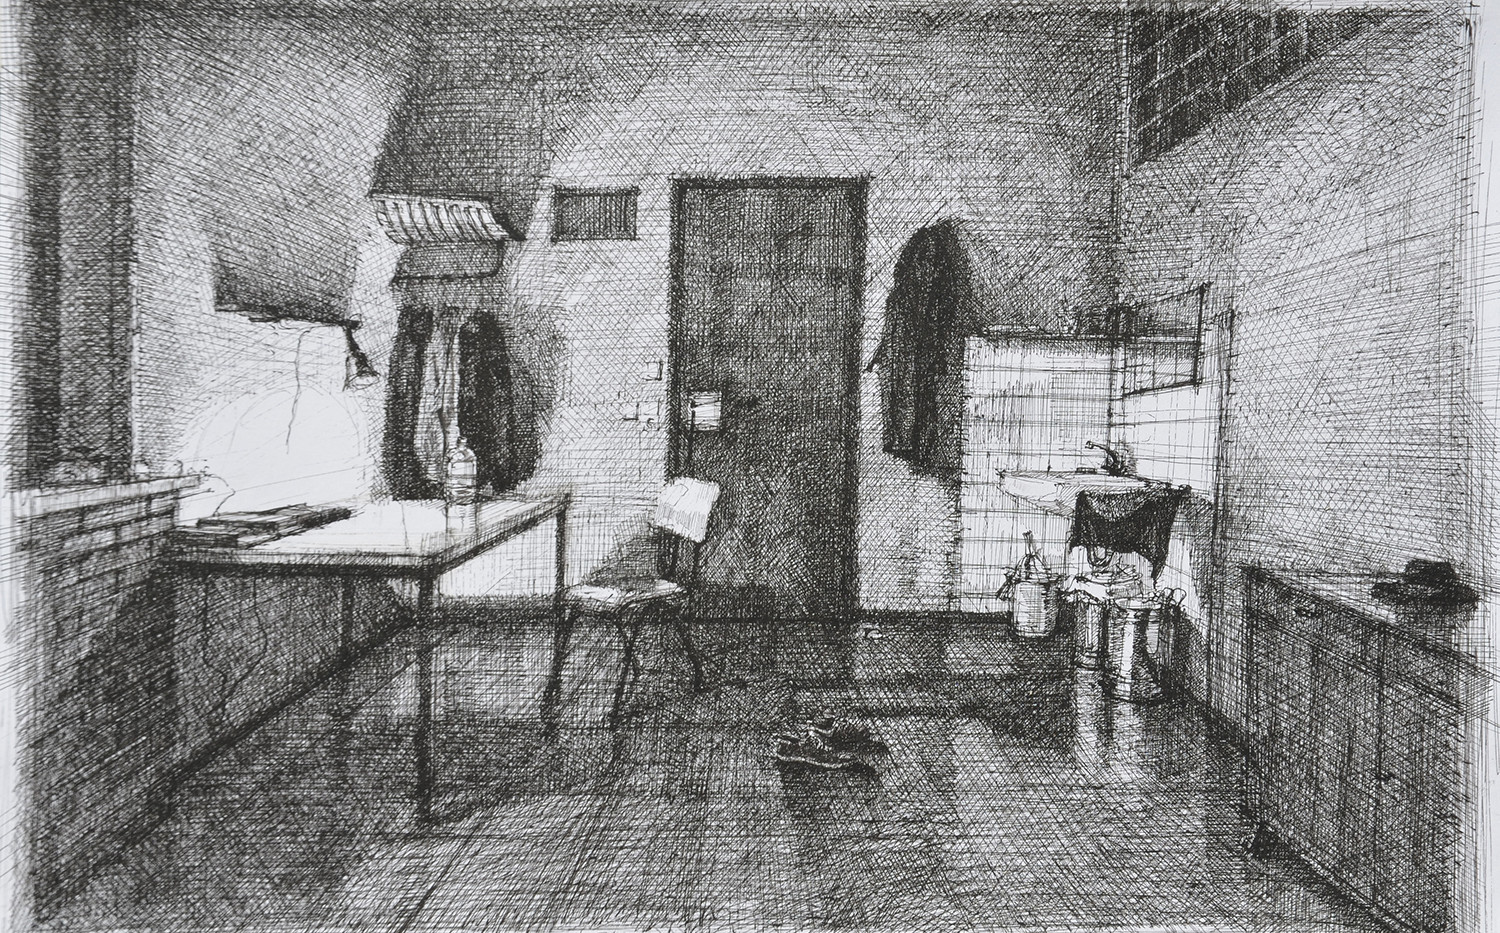 The Artist's Room, 38.5x56.0cm, ink on p